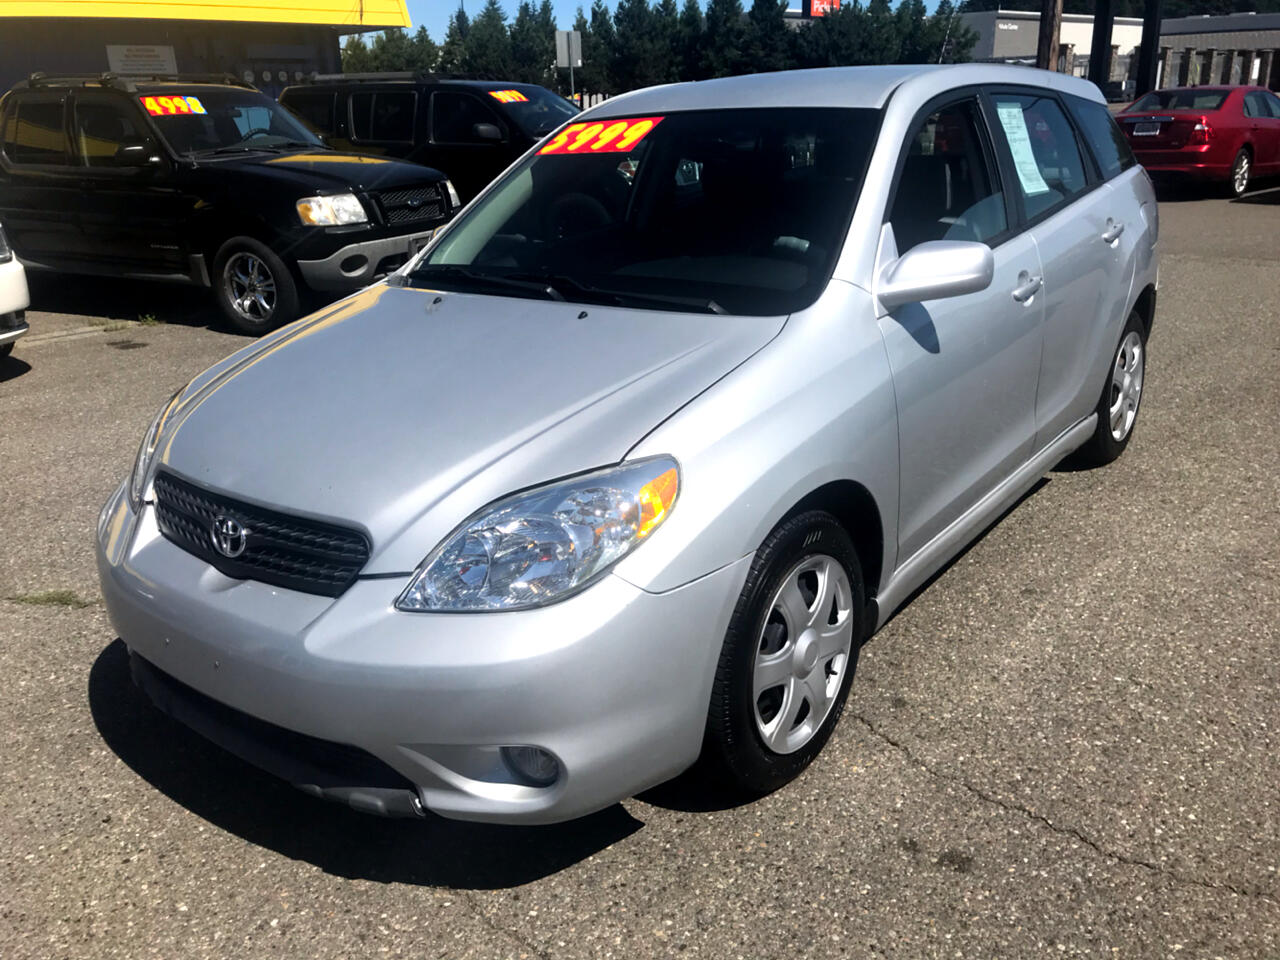 Toyota Matrix 5dr Wgn Std Auto (Natl) 2006